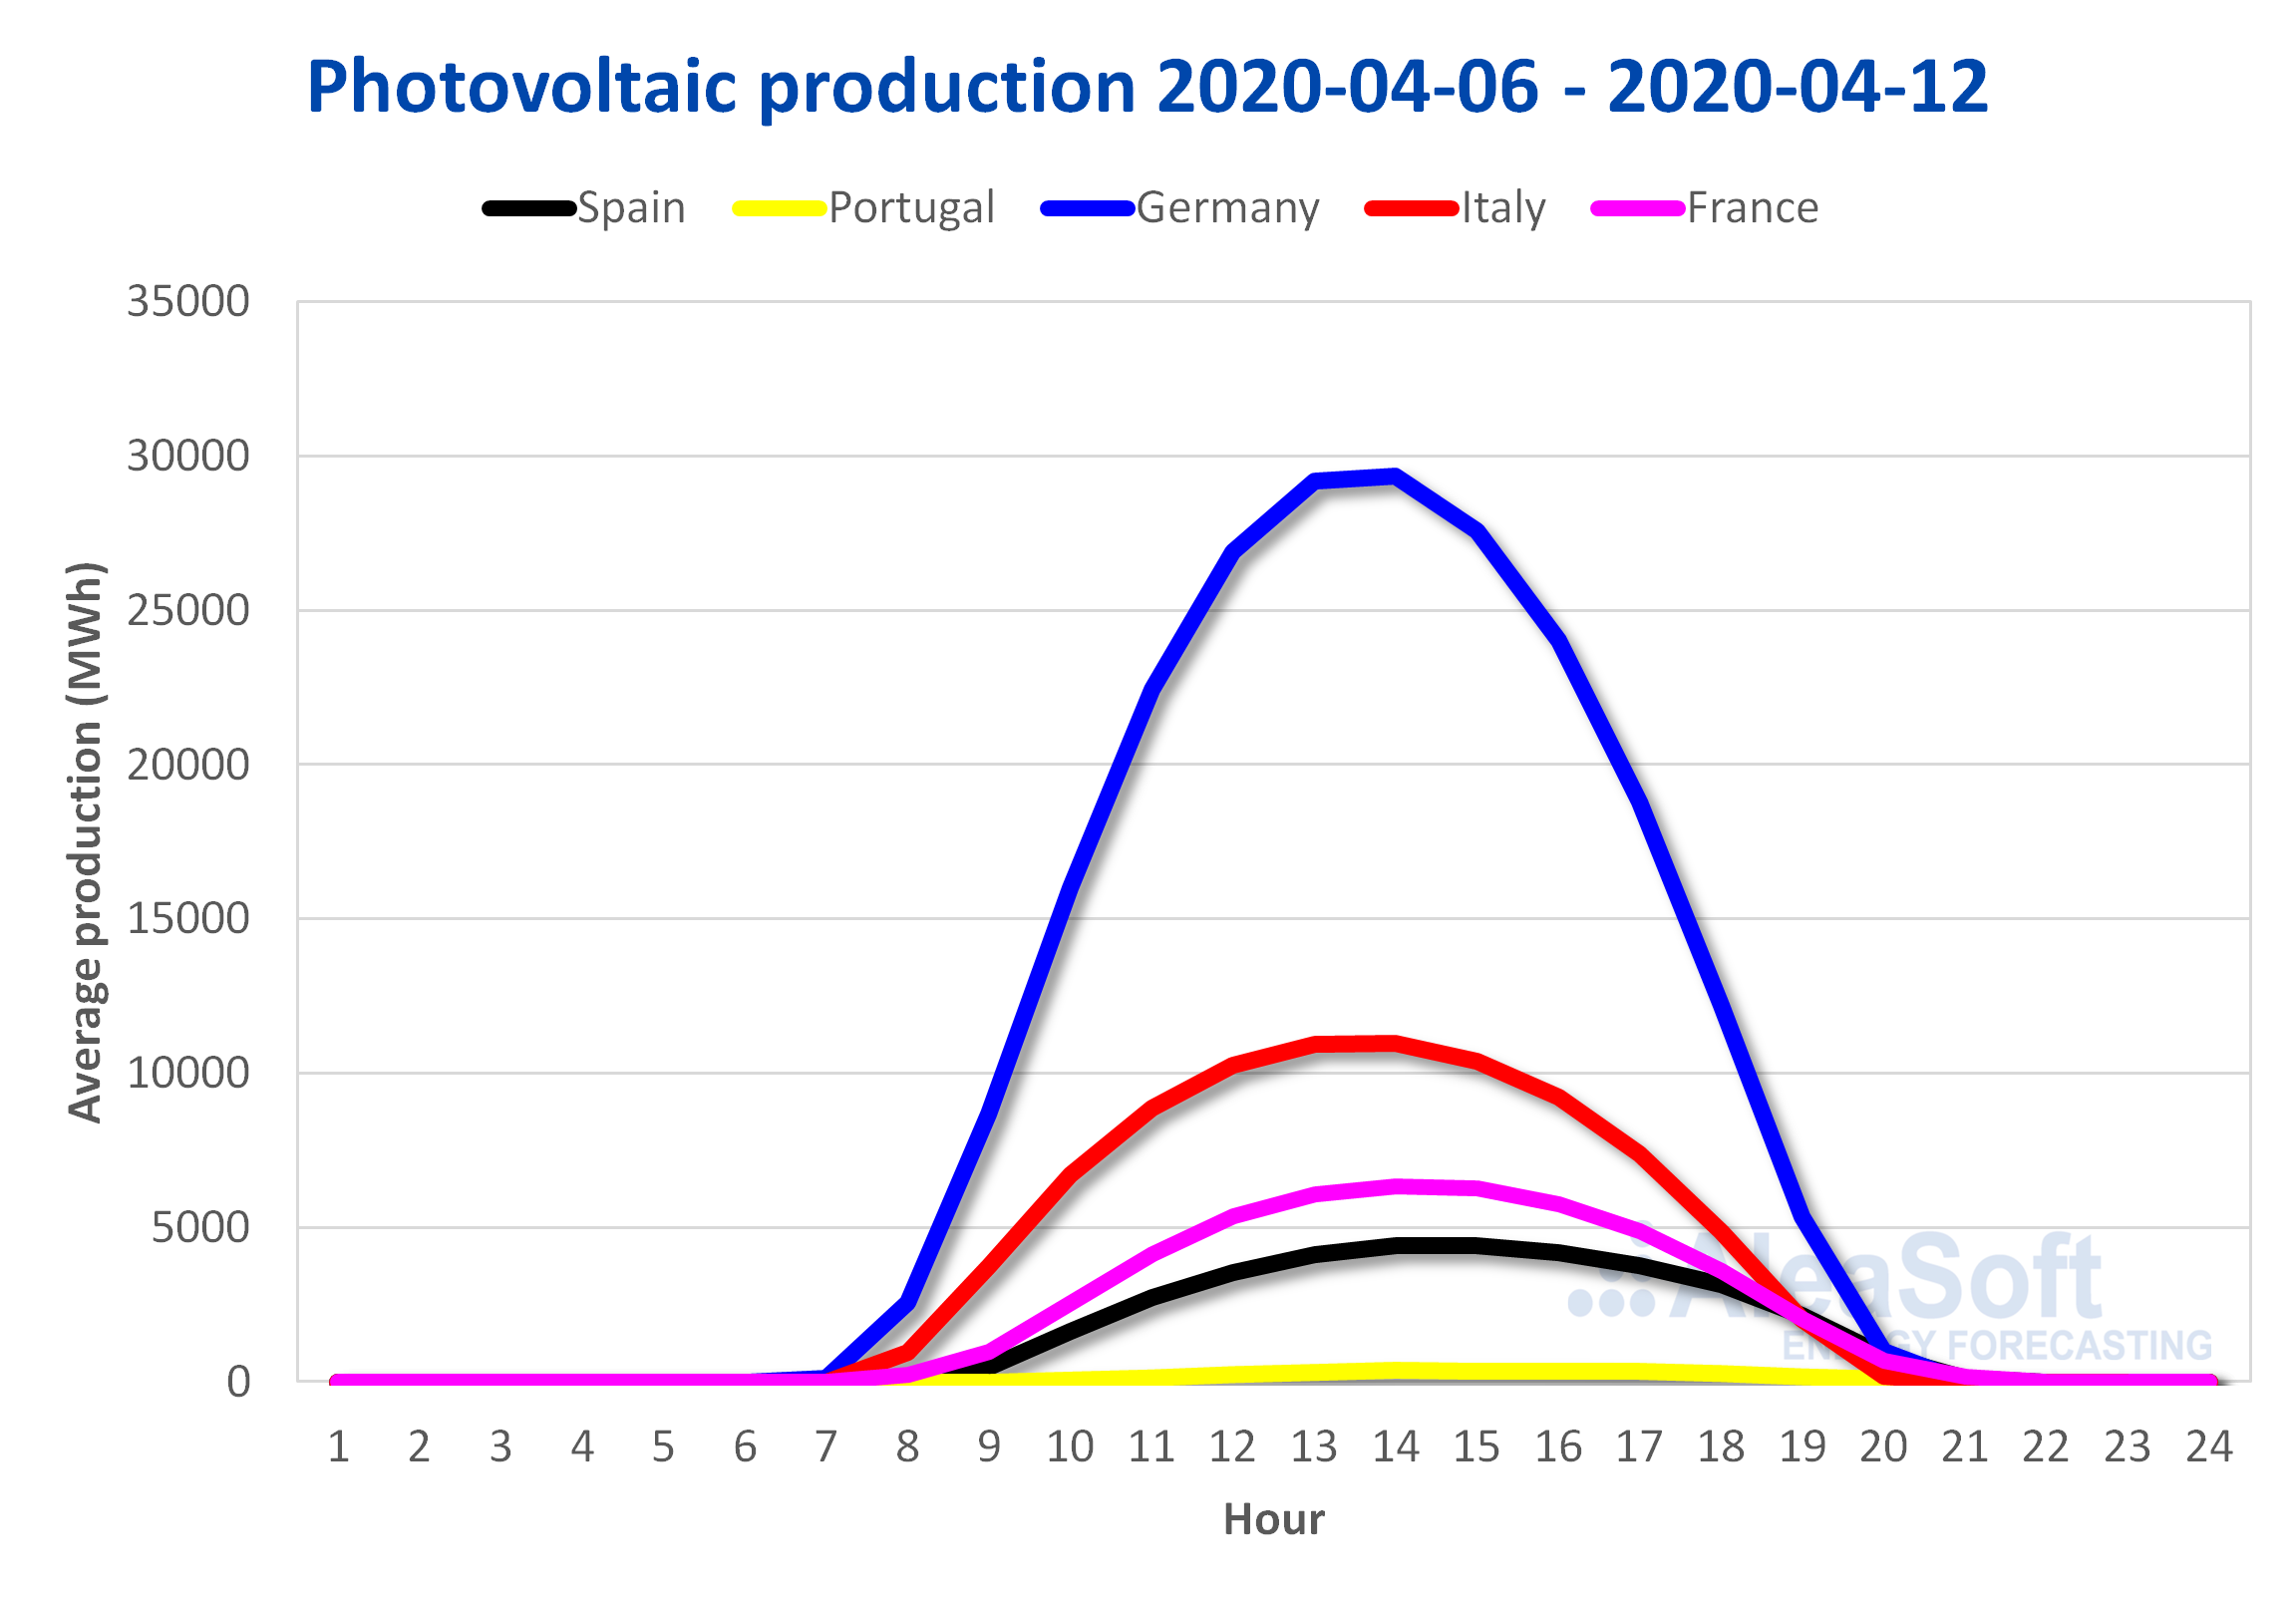 tovoltaic-  production profile Europe